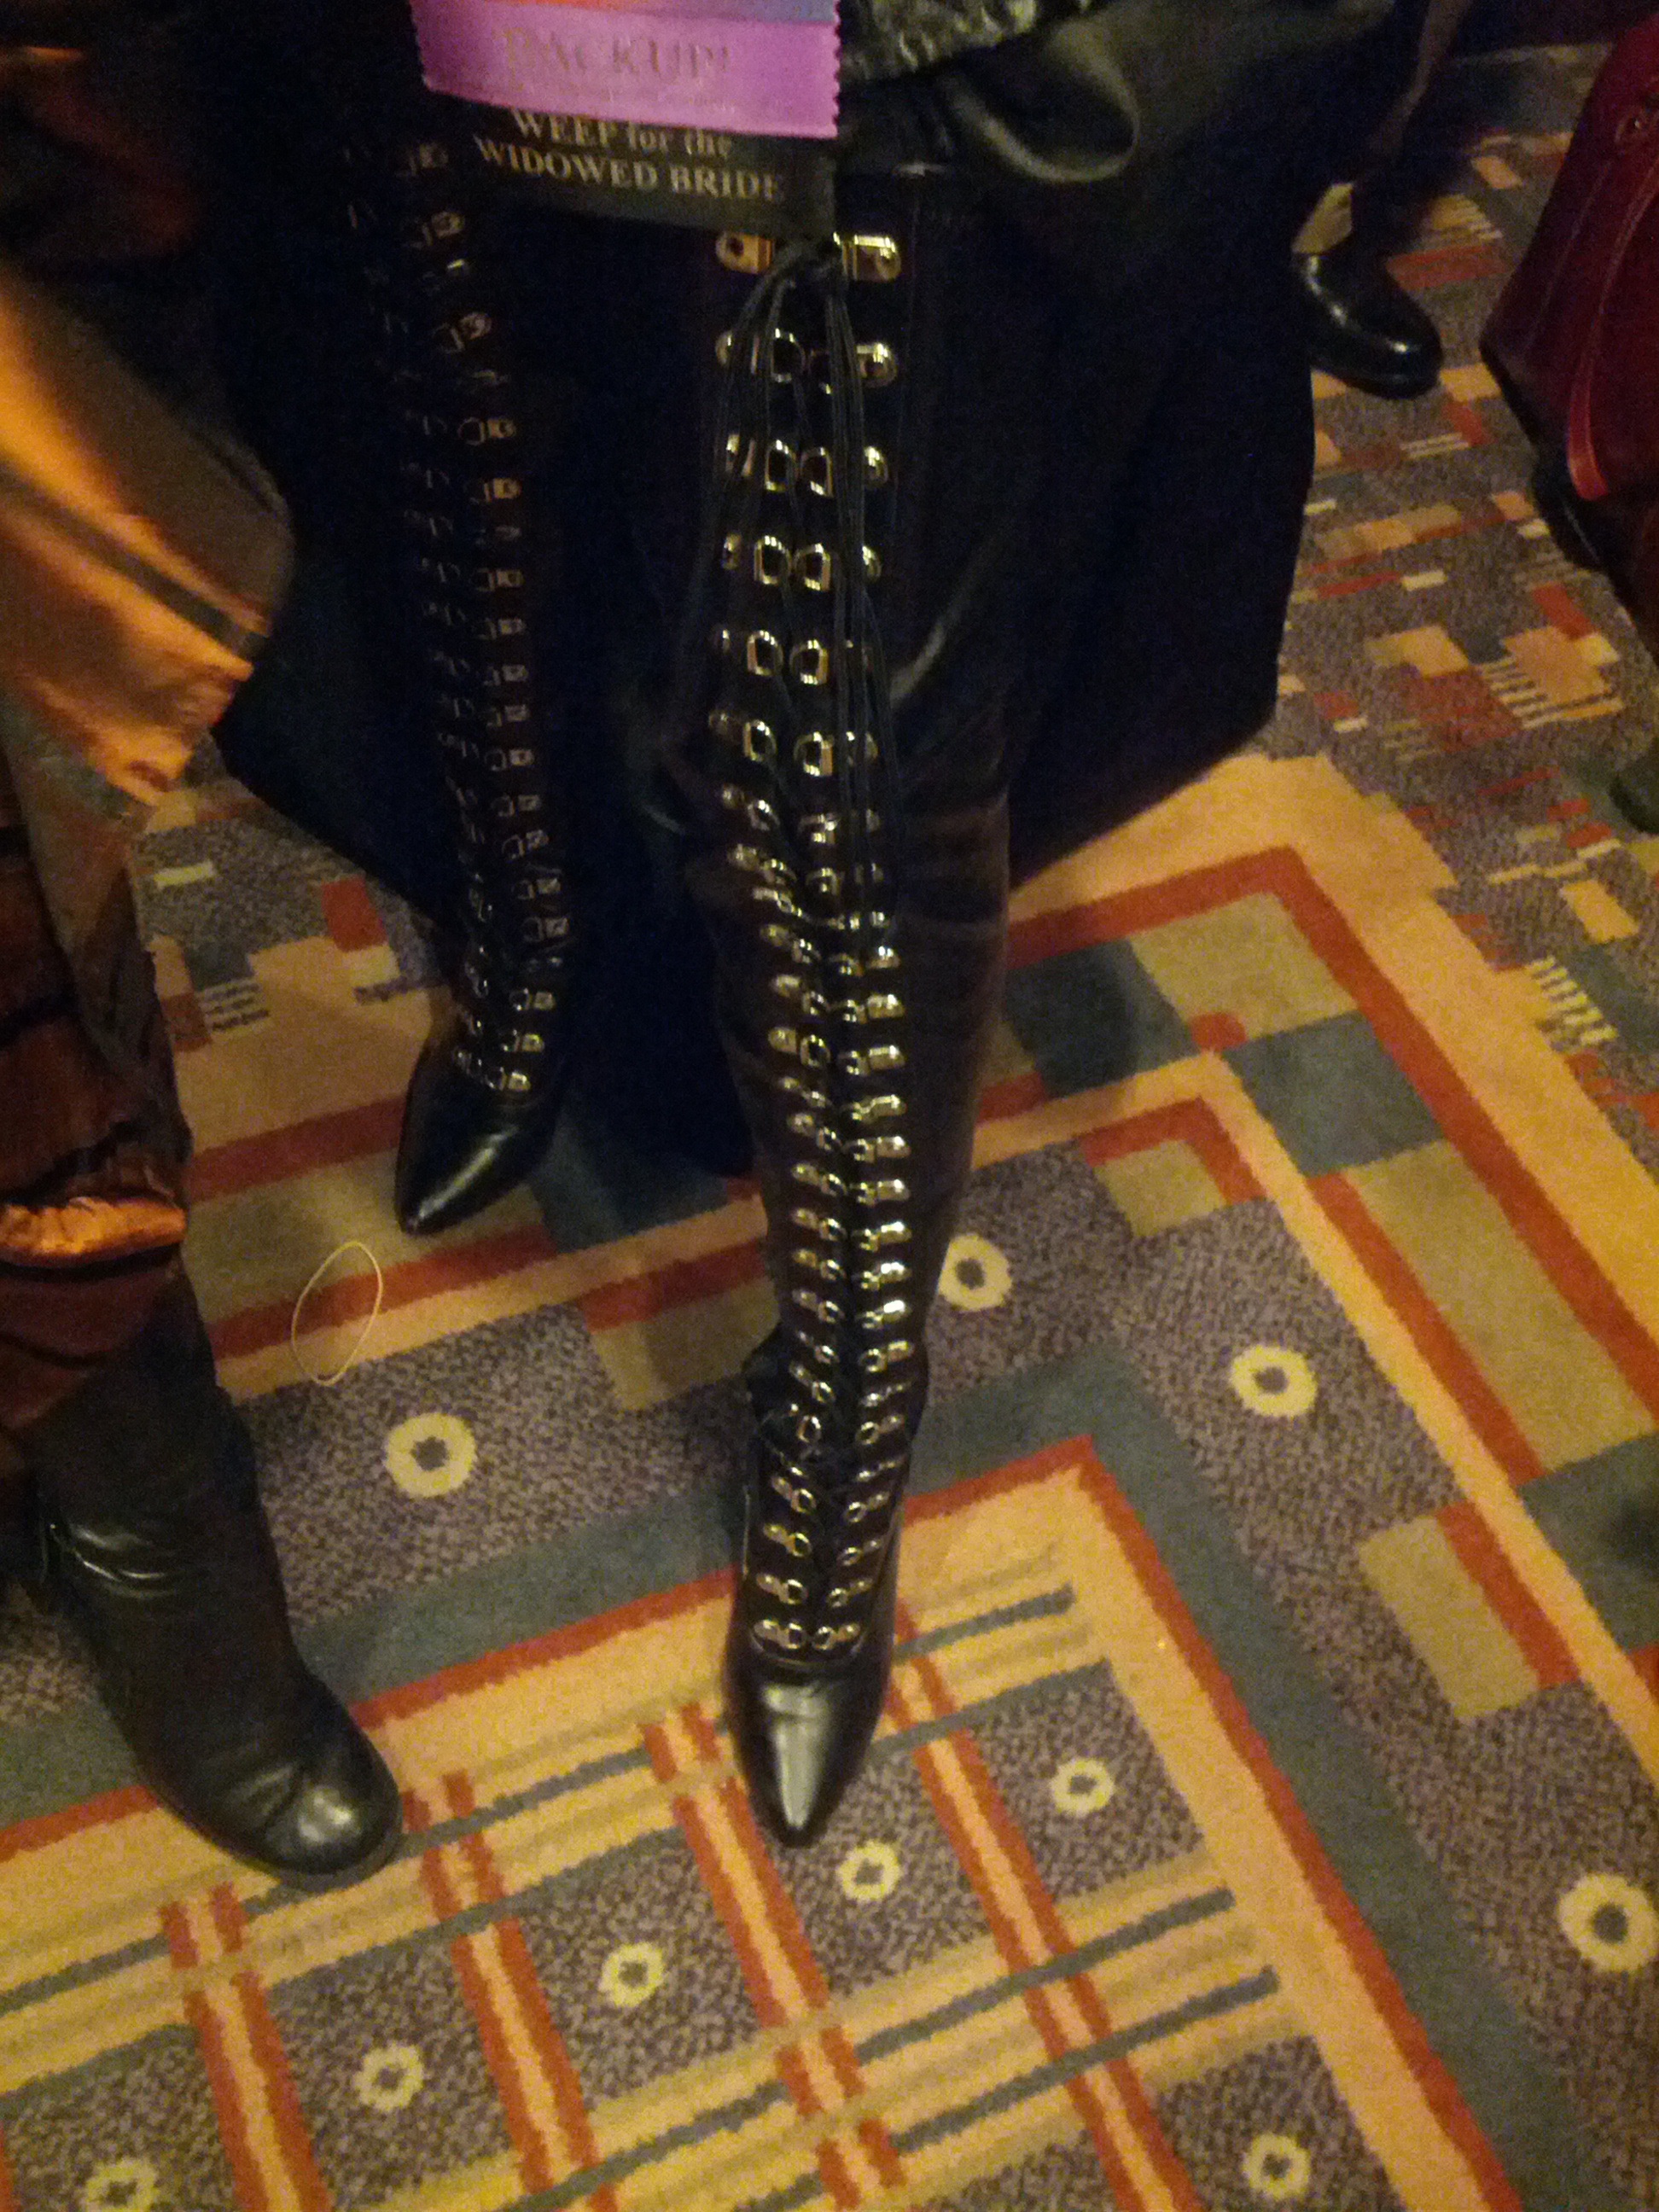 Close up of mega awesome boots with metal laces up the front